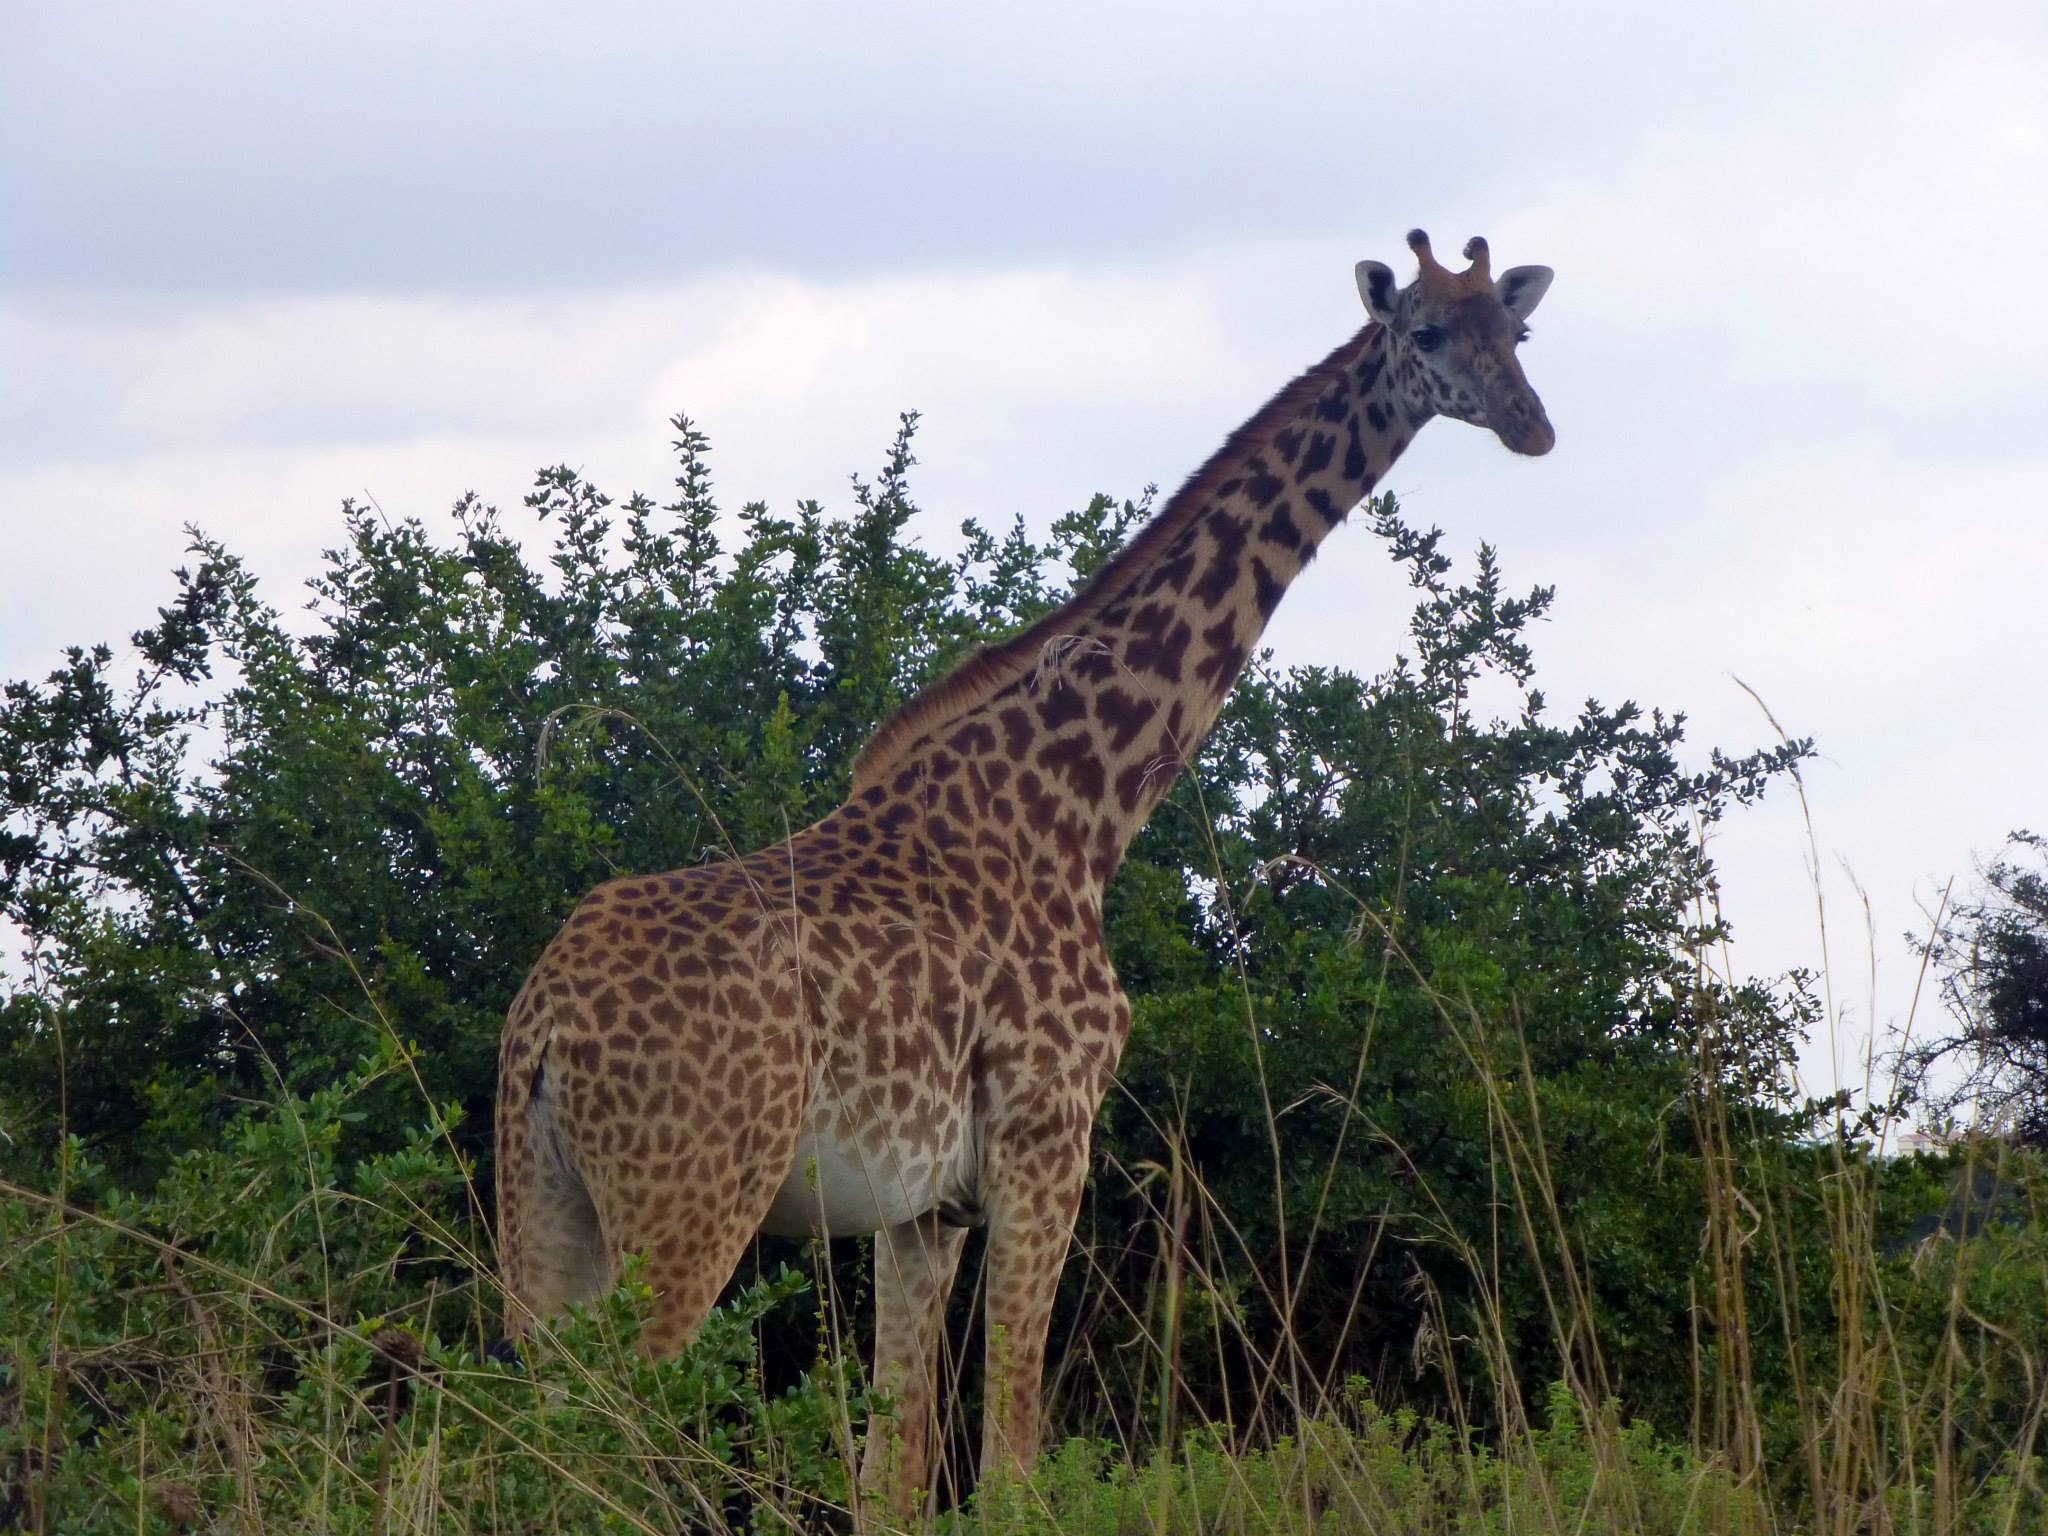 Giraffe in Nairobi National Park - Safari In Kenya